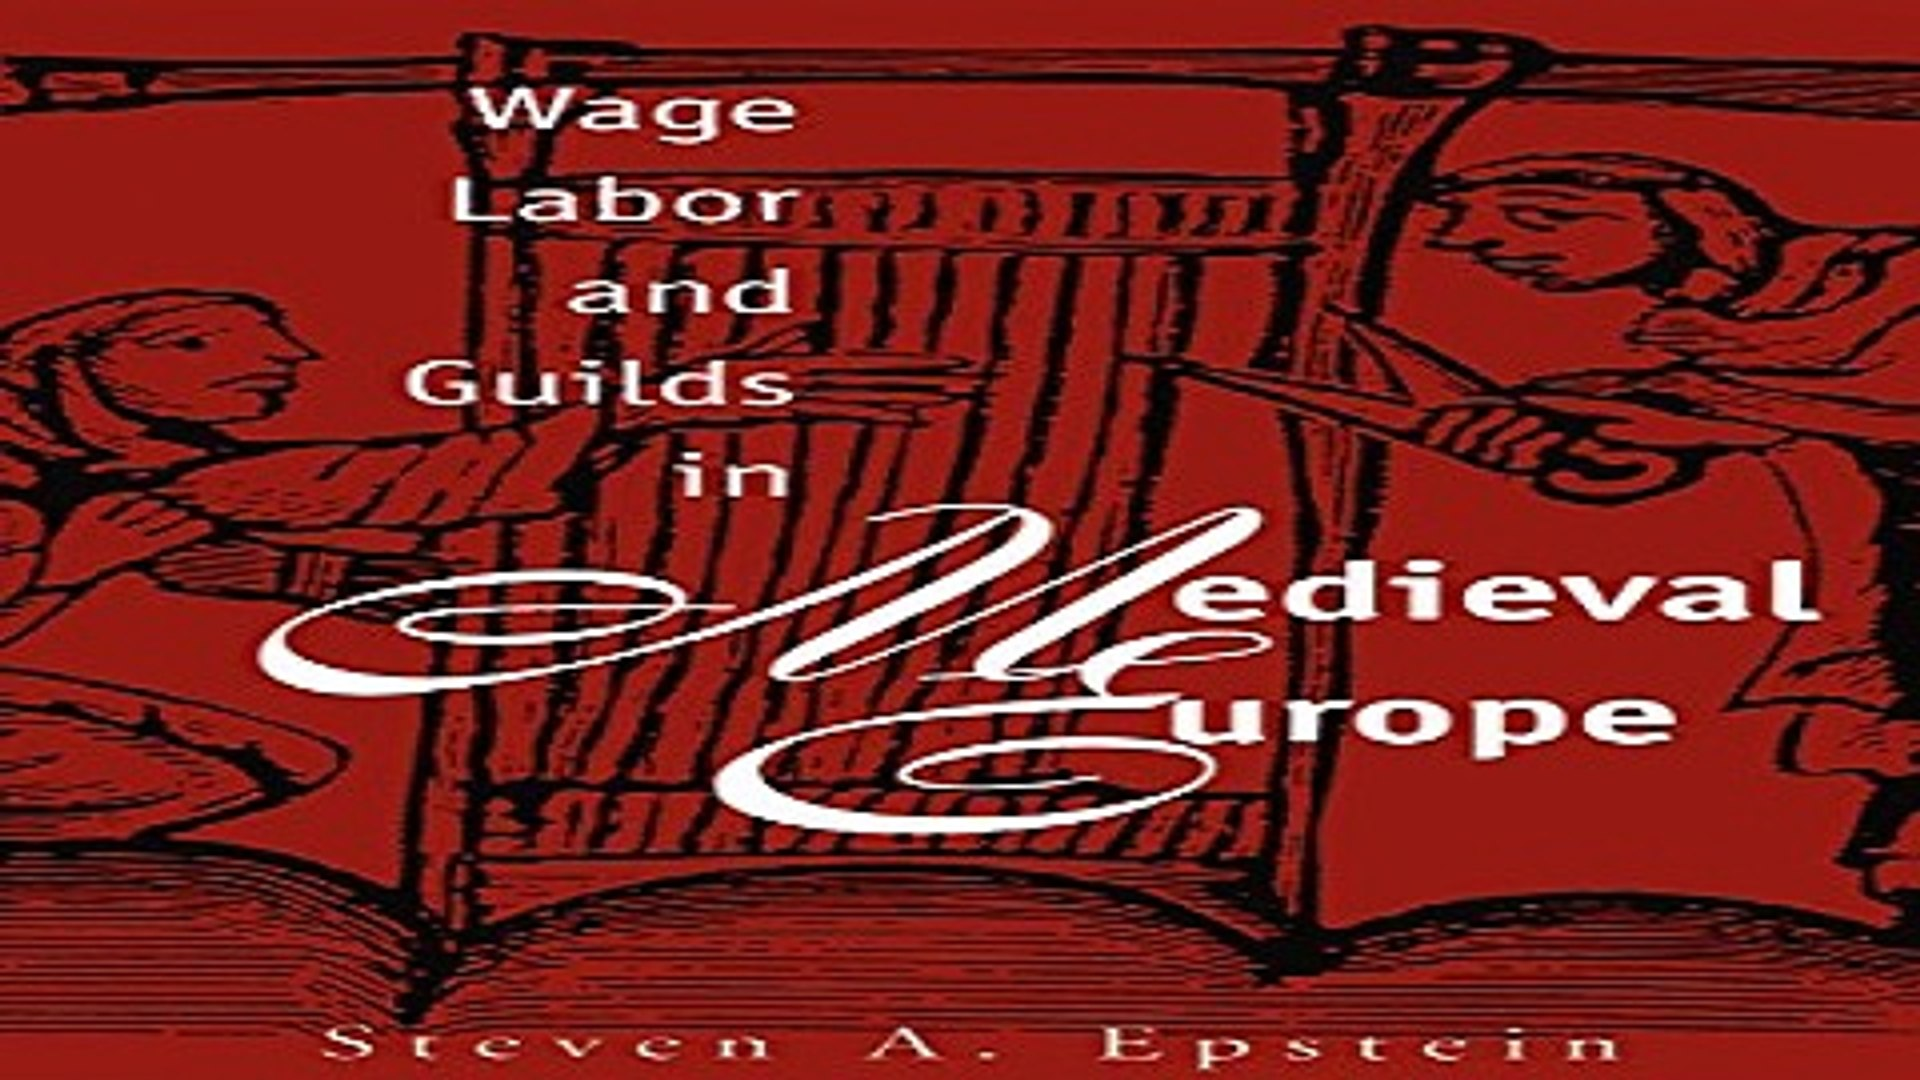 Read Wage Labor and Guilds in Medieval Europe Ebook pdf download